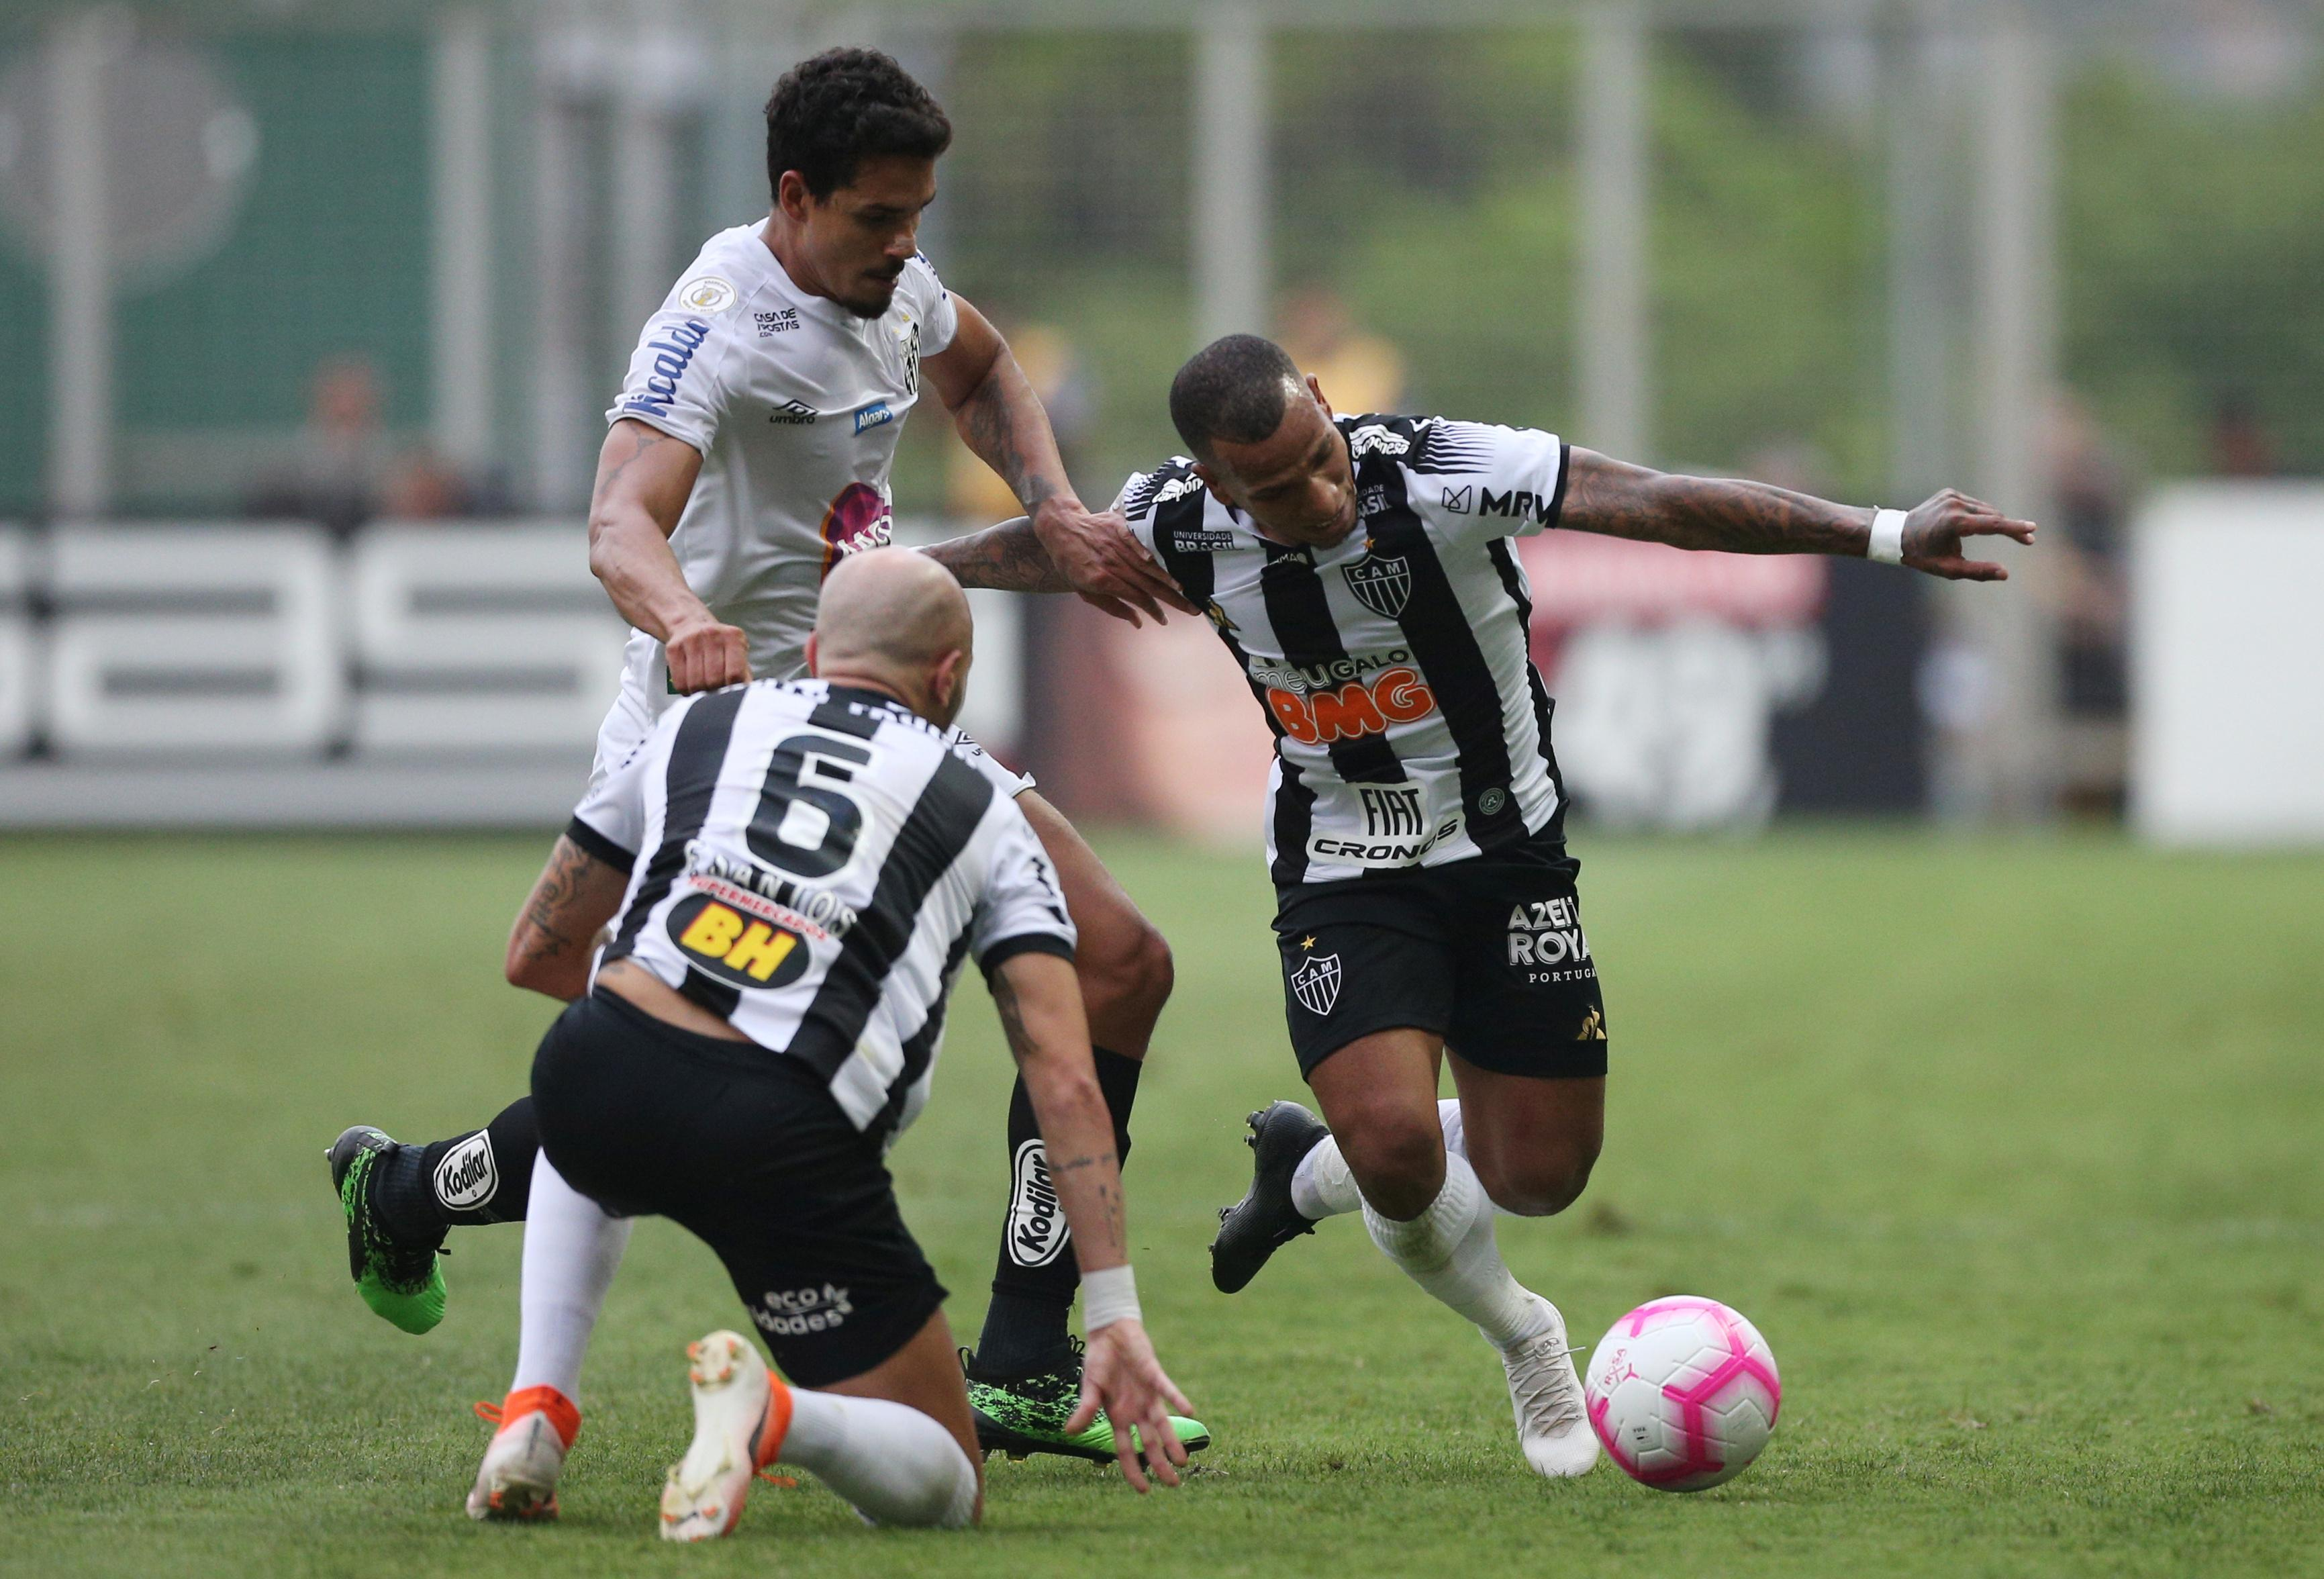 Santos miss chance to close gap on leaders in 2-0 defeat